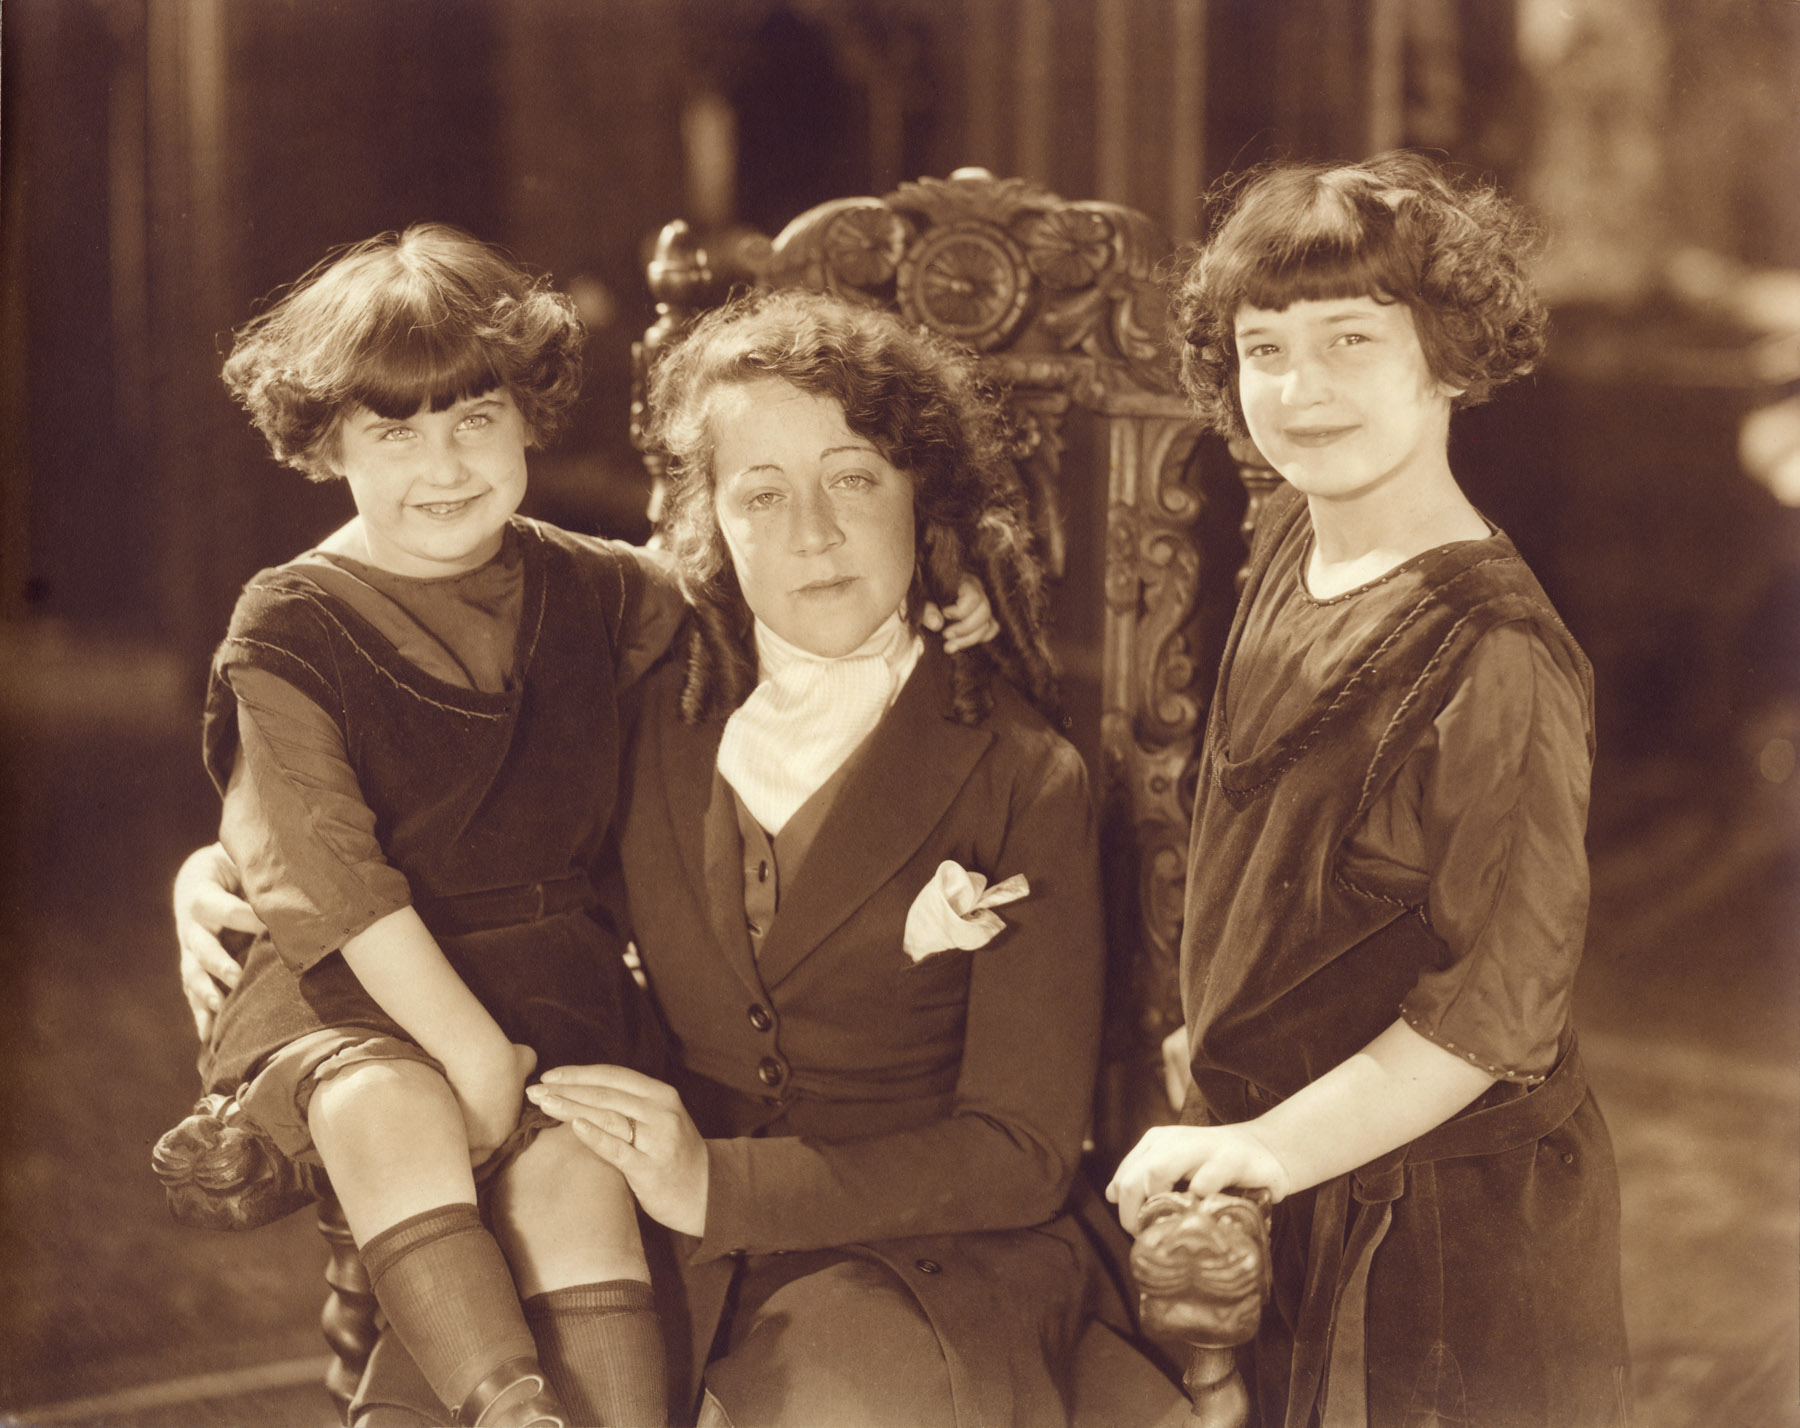 Ruth, Malvina Fox Dunn, Bernice.  Hollywood, 1921